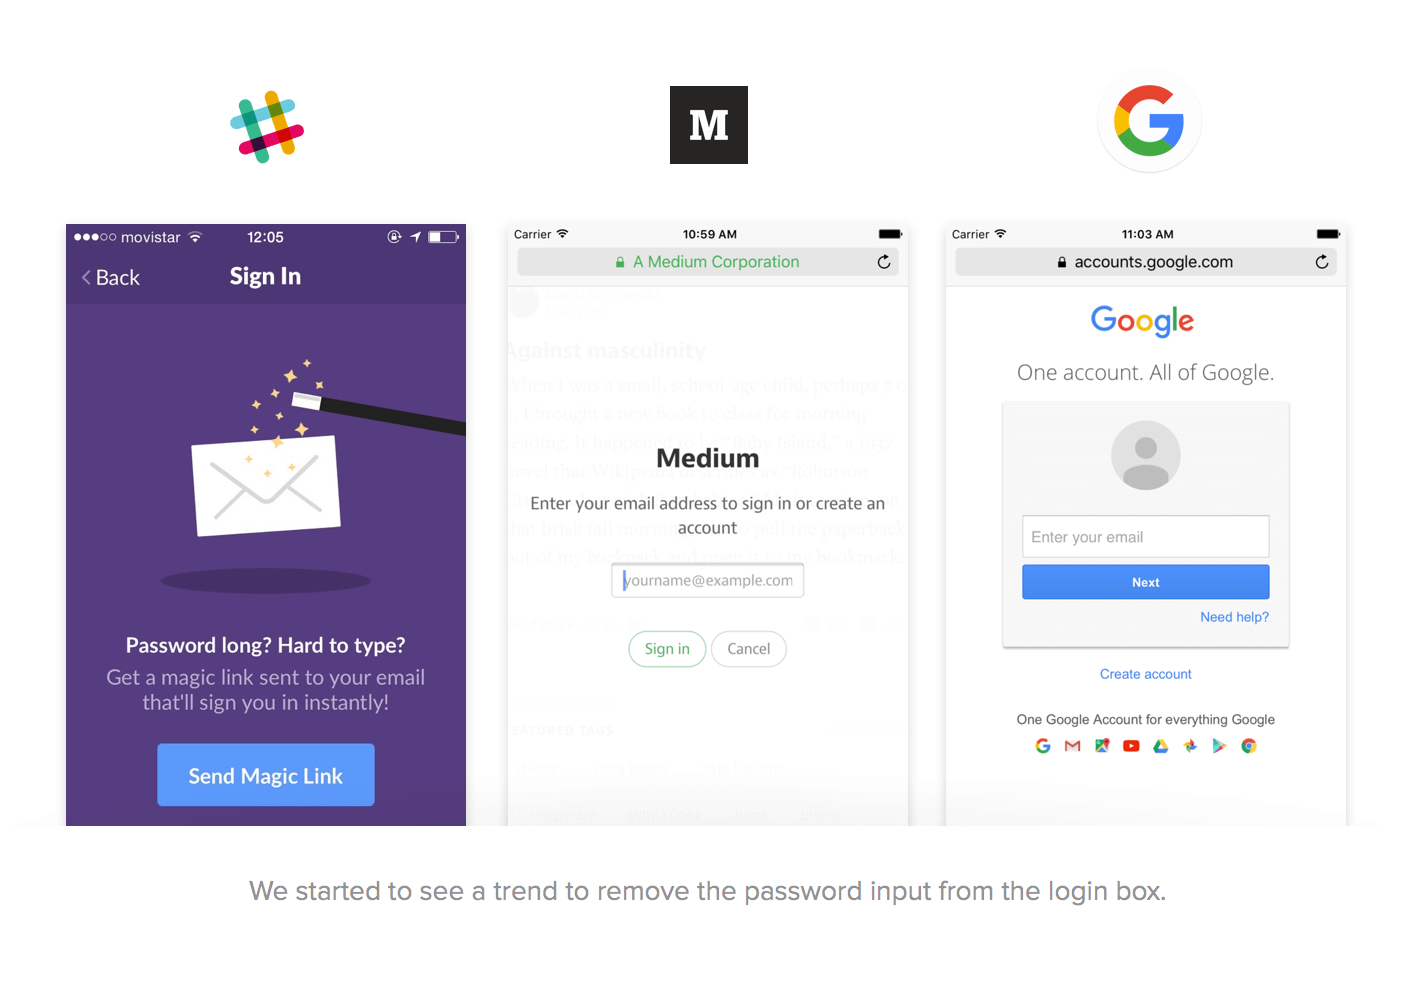 Slack, Medium, and Google login screens